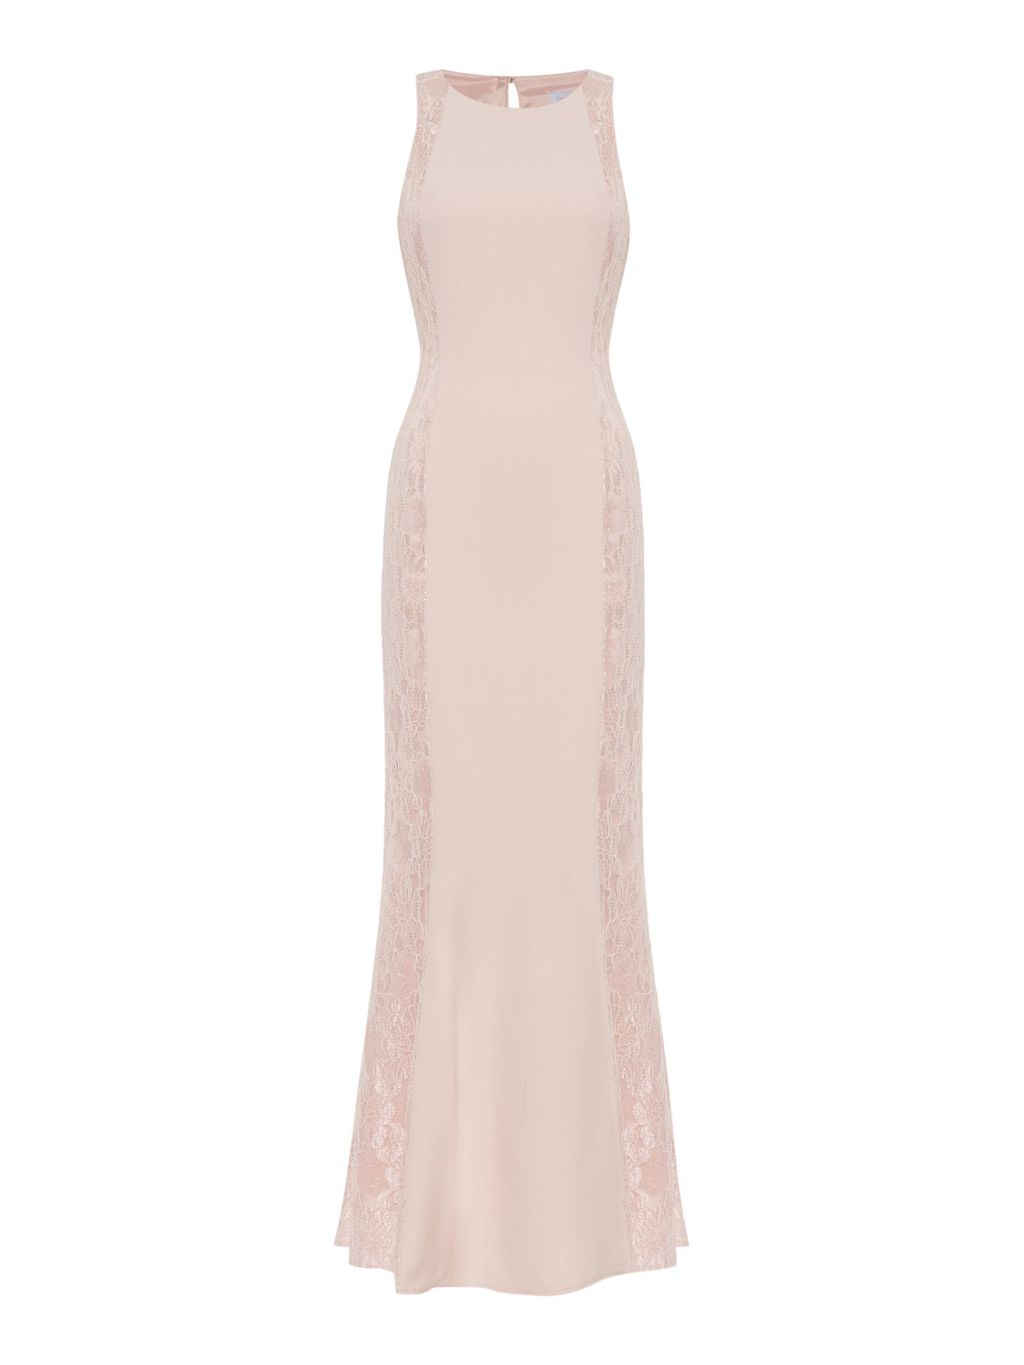 Sleeveless Gown With Lace Side Panels, Blush - style: ballgown; pattern: plain; sleeve style: sleeveless; predominant colour: nude; occasions: evening; length: floor length; fit: body skimming; fibres: polyester/polyamide - stretch; neckline: crew; sleeve length: sleeveless; pattern type: fabric; texture group: jersey - stretchy/drapey; season: s/s 2016; wardrobe: event